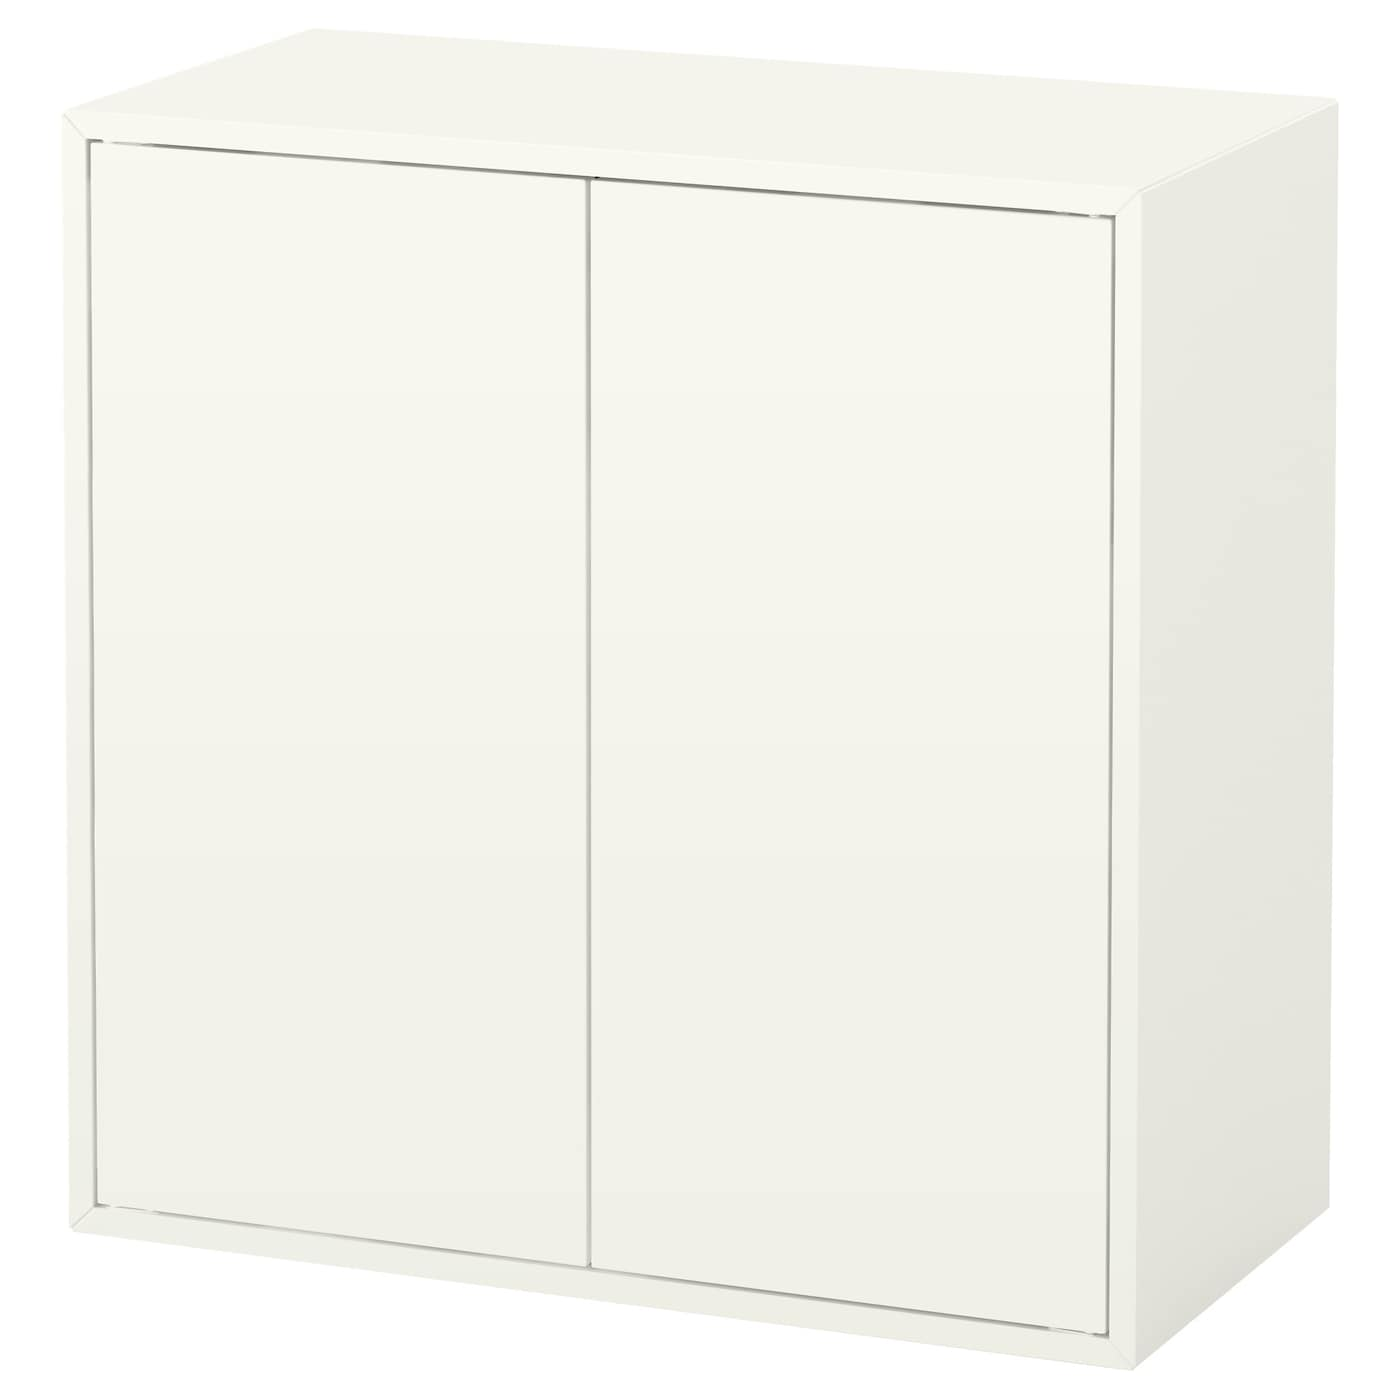 IKEA EKET cabinet w 2 doors and 1 shelf